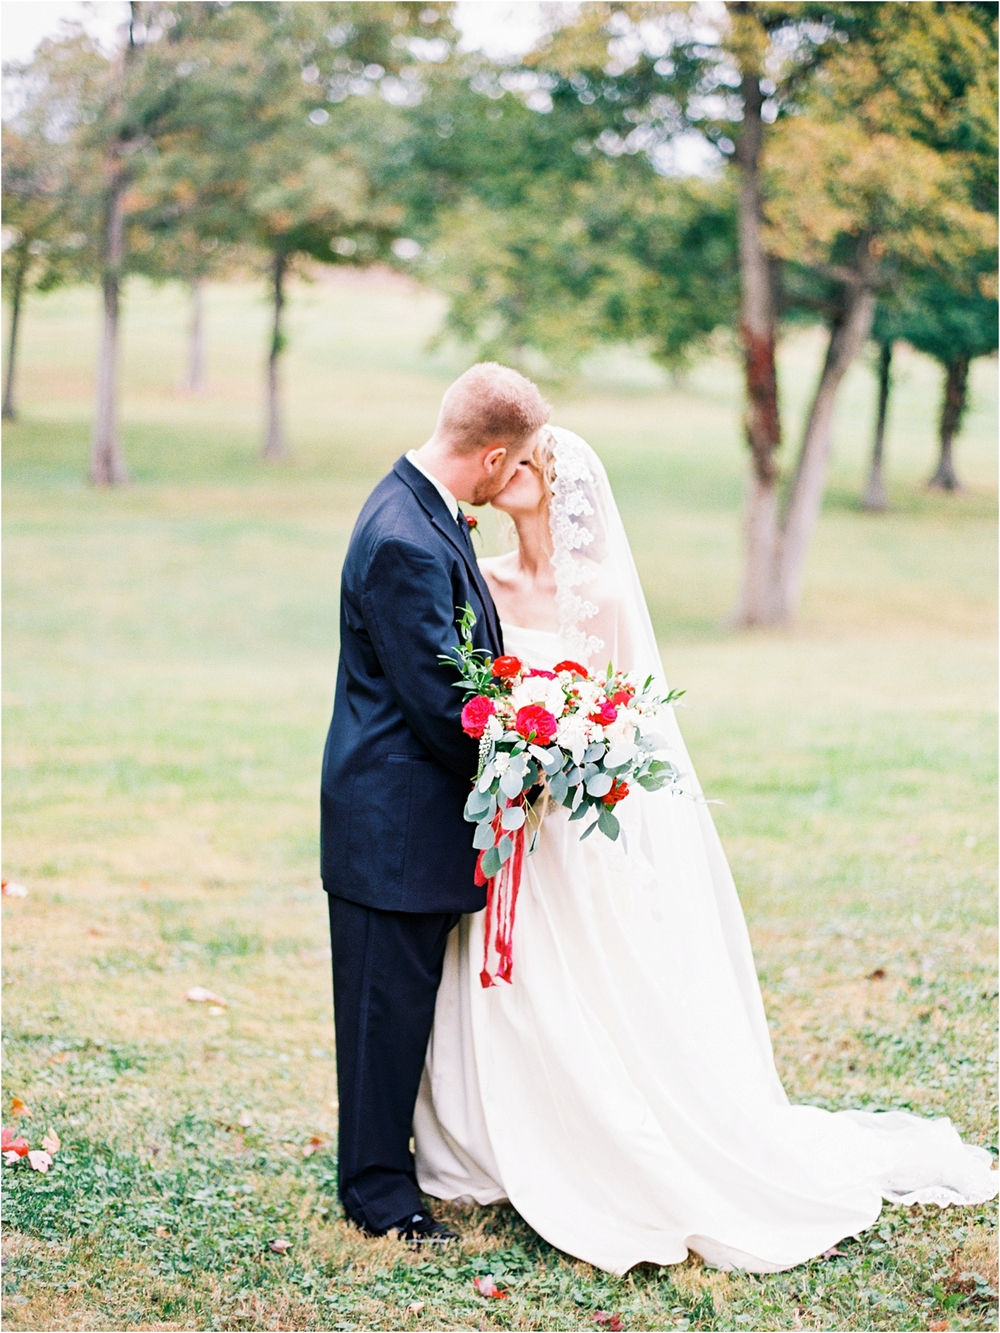 Springfield MO Wedding Ideas - Jordan Brittley Photography (www.jordanbrittley.com)